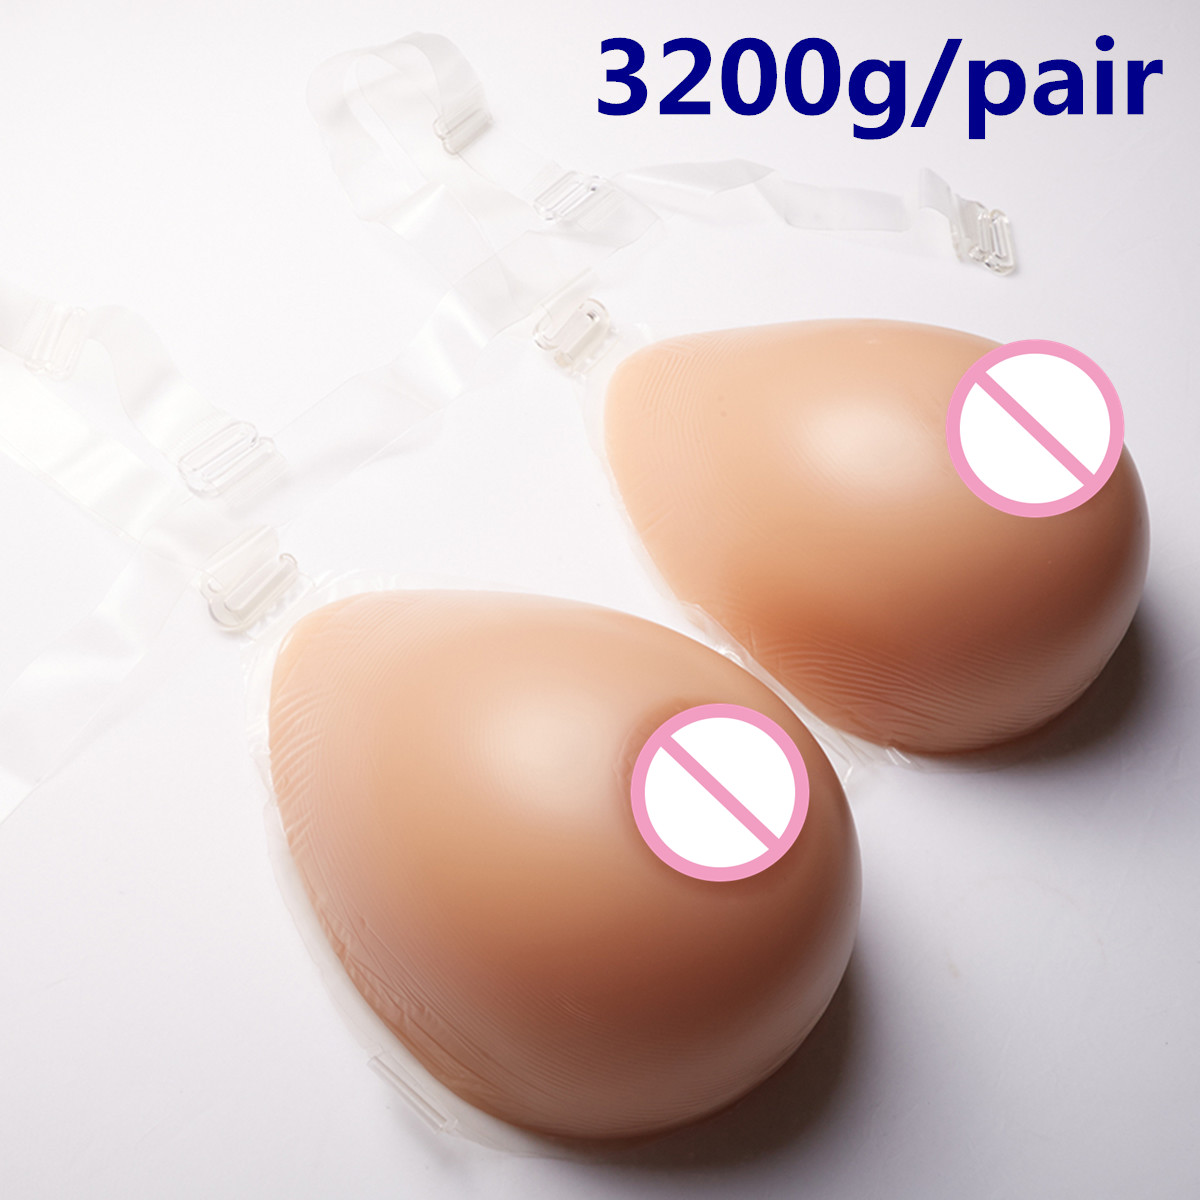 Realistic Breast Prosthesis 3200g/pair Transgender Silicone Breast Forms Artificial Breast Brown False Boobs artificial breast boobs cup h 3200g pair realistic breast prosthesis silicone breast forms for crossdresser transgender